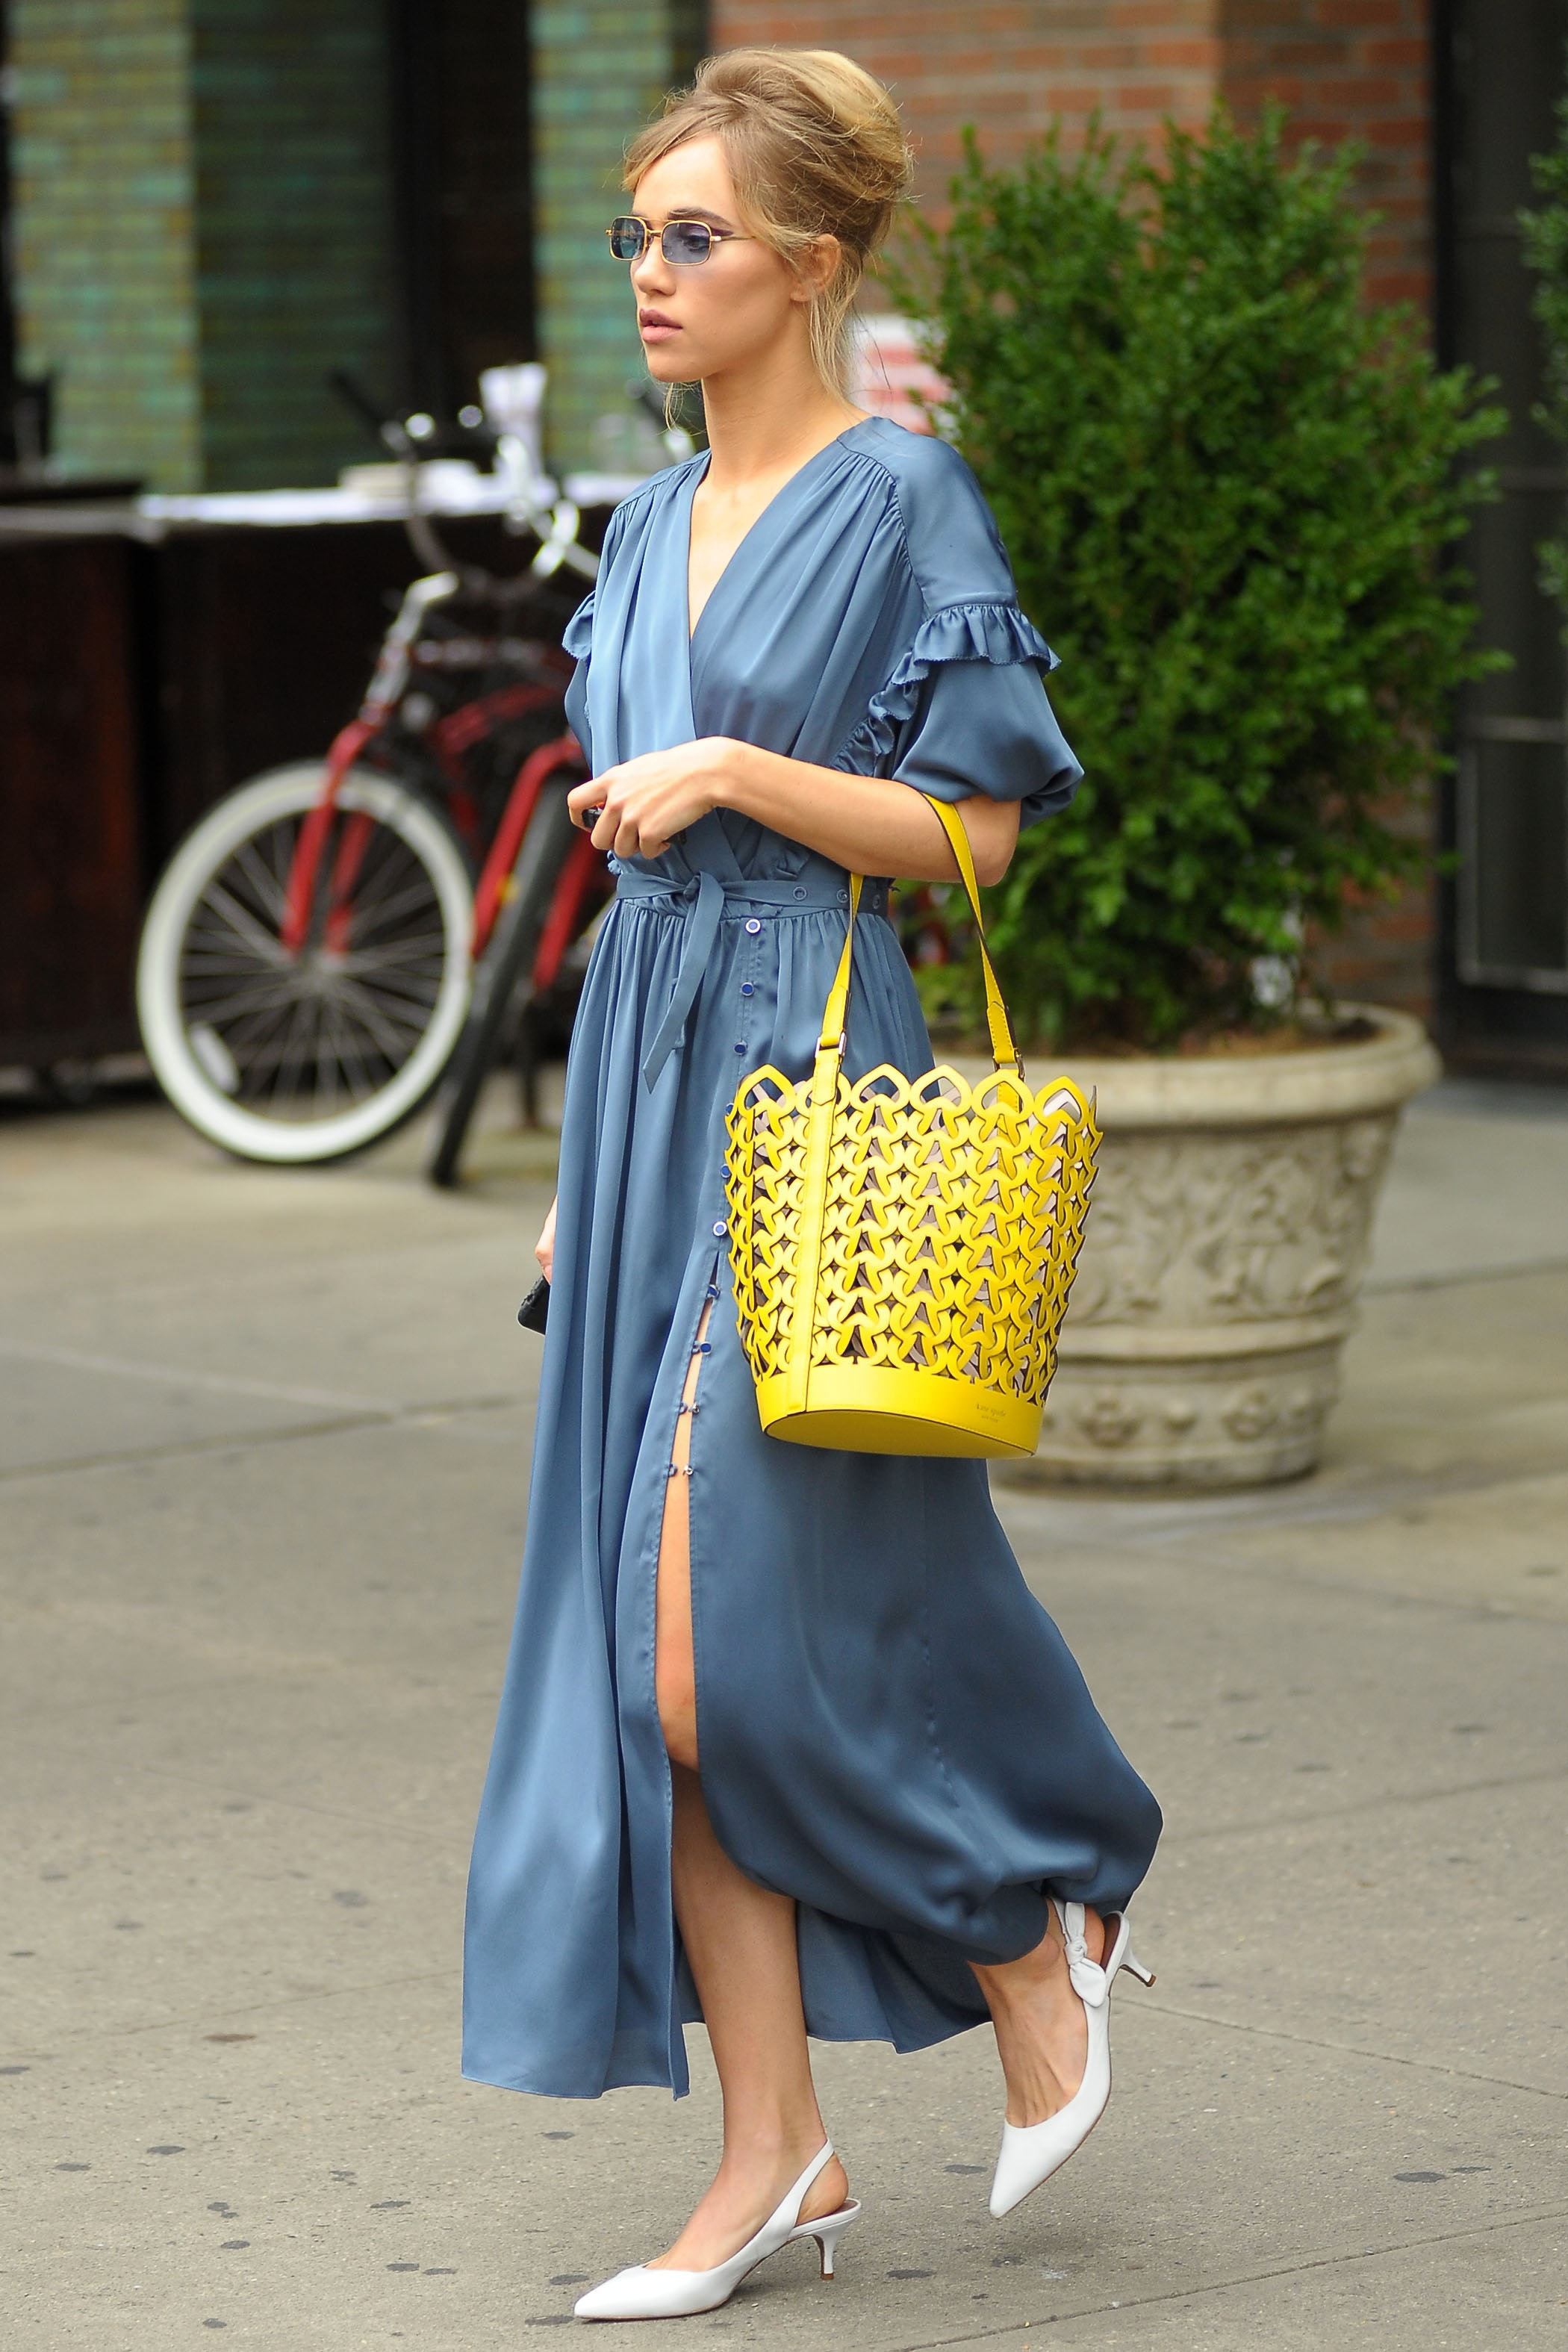 This Yellow Kate Spade Bucket Bag Is Celeb, And Runway, Approved